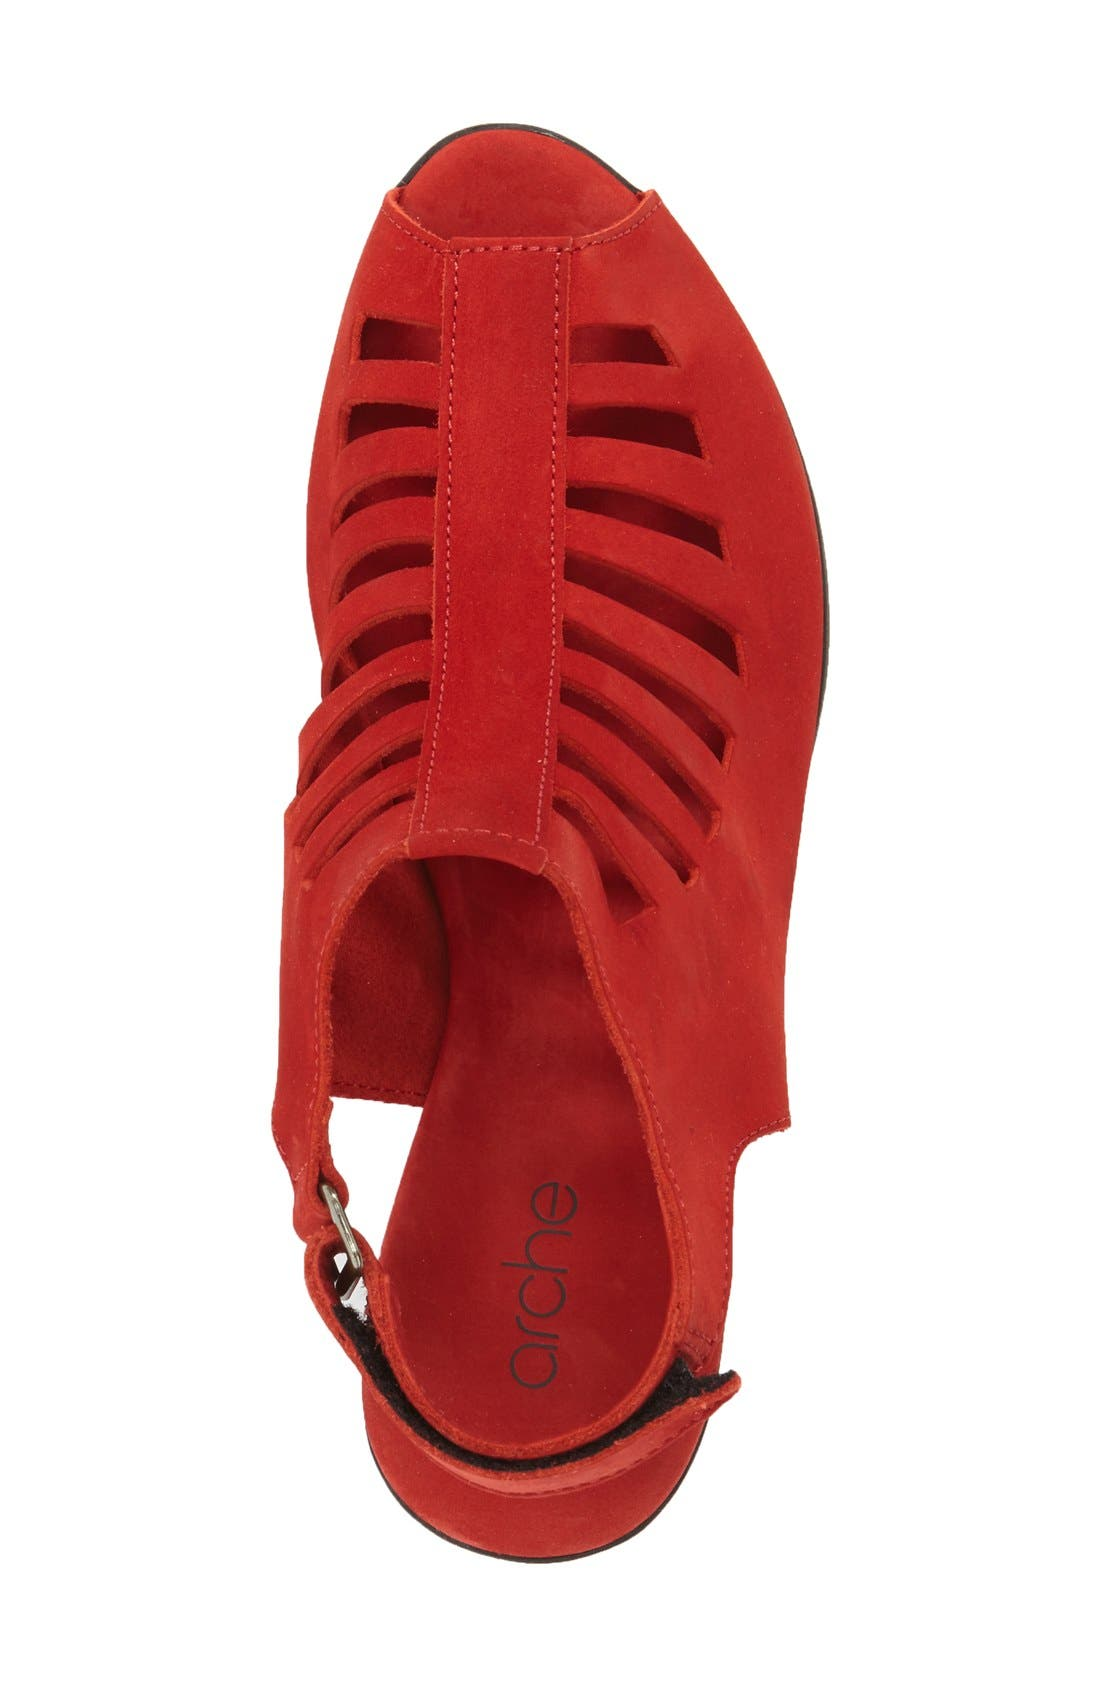 'Exor' Sandal,                             Alternate thumbnail 2, color,                             629